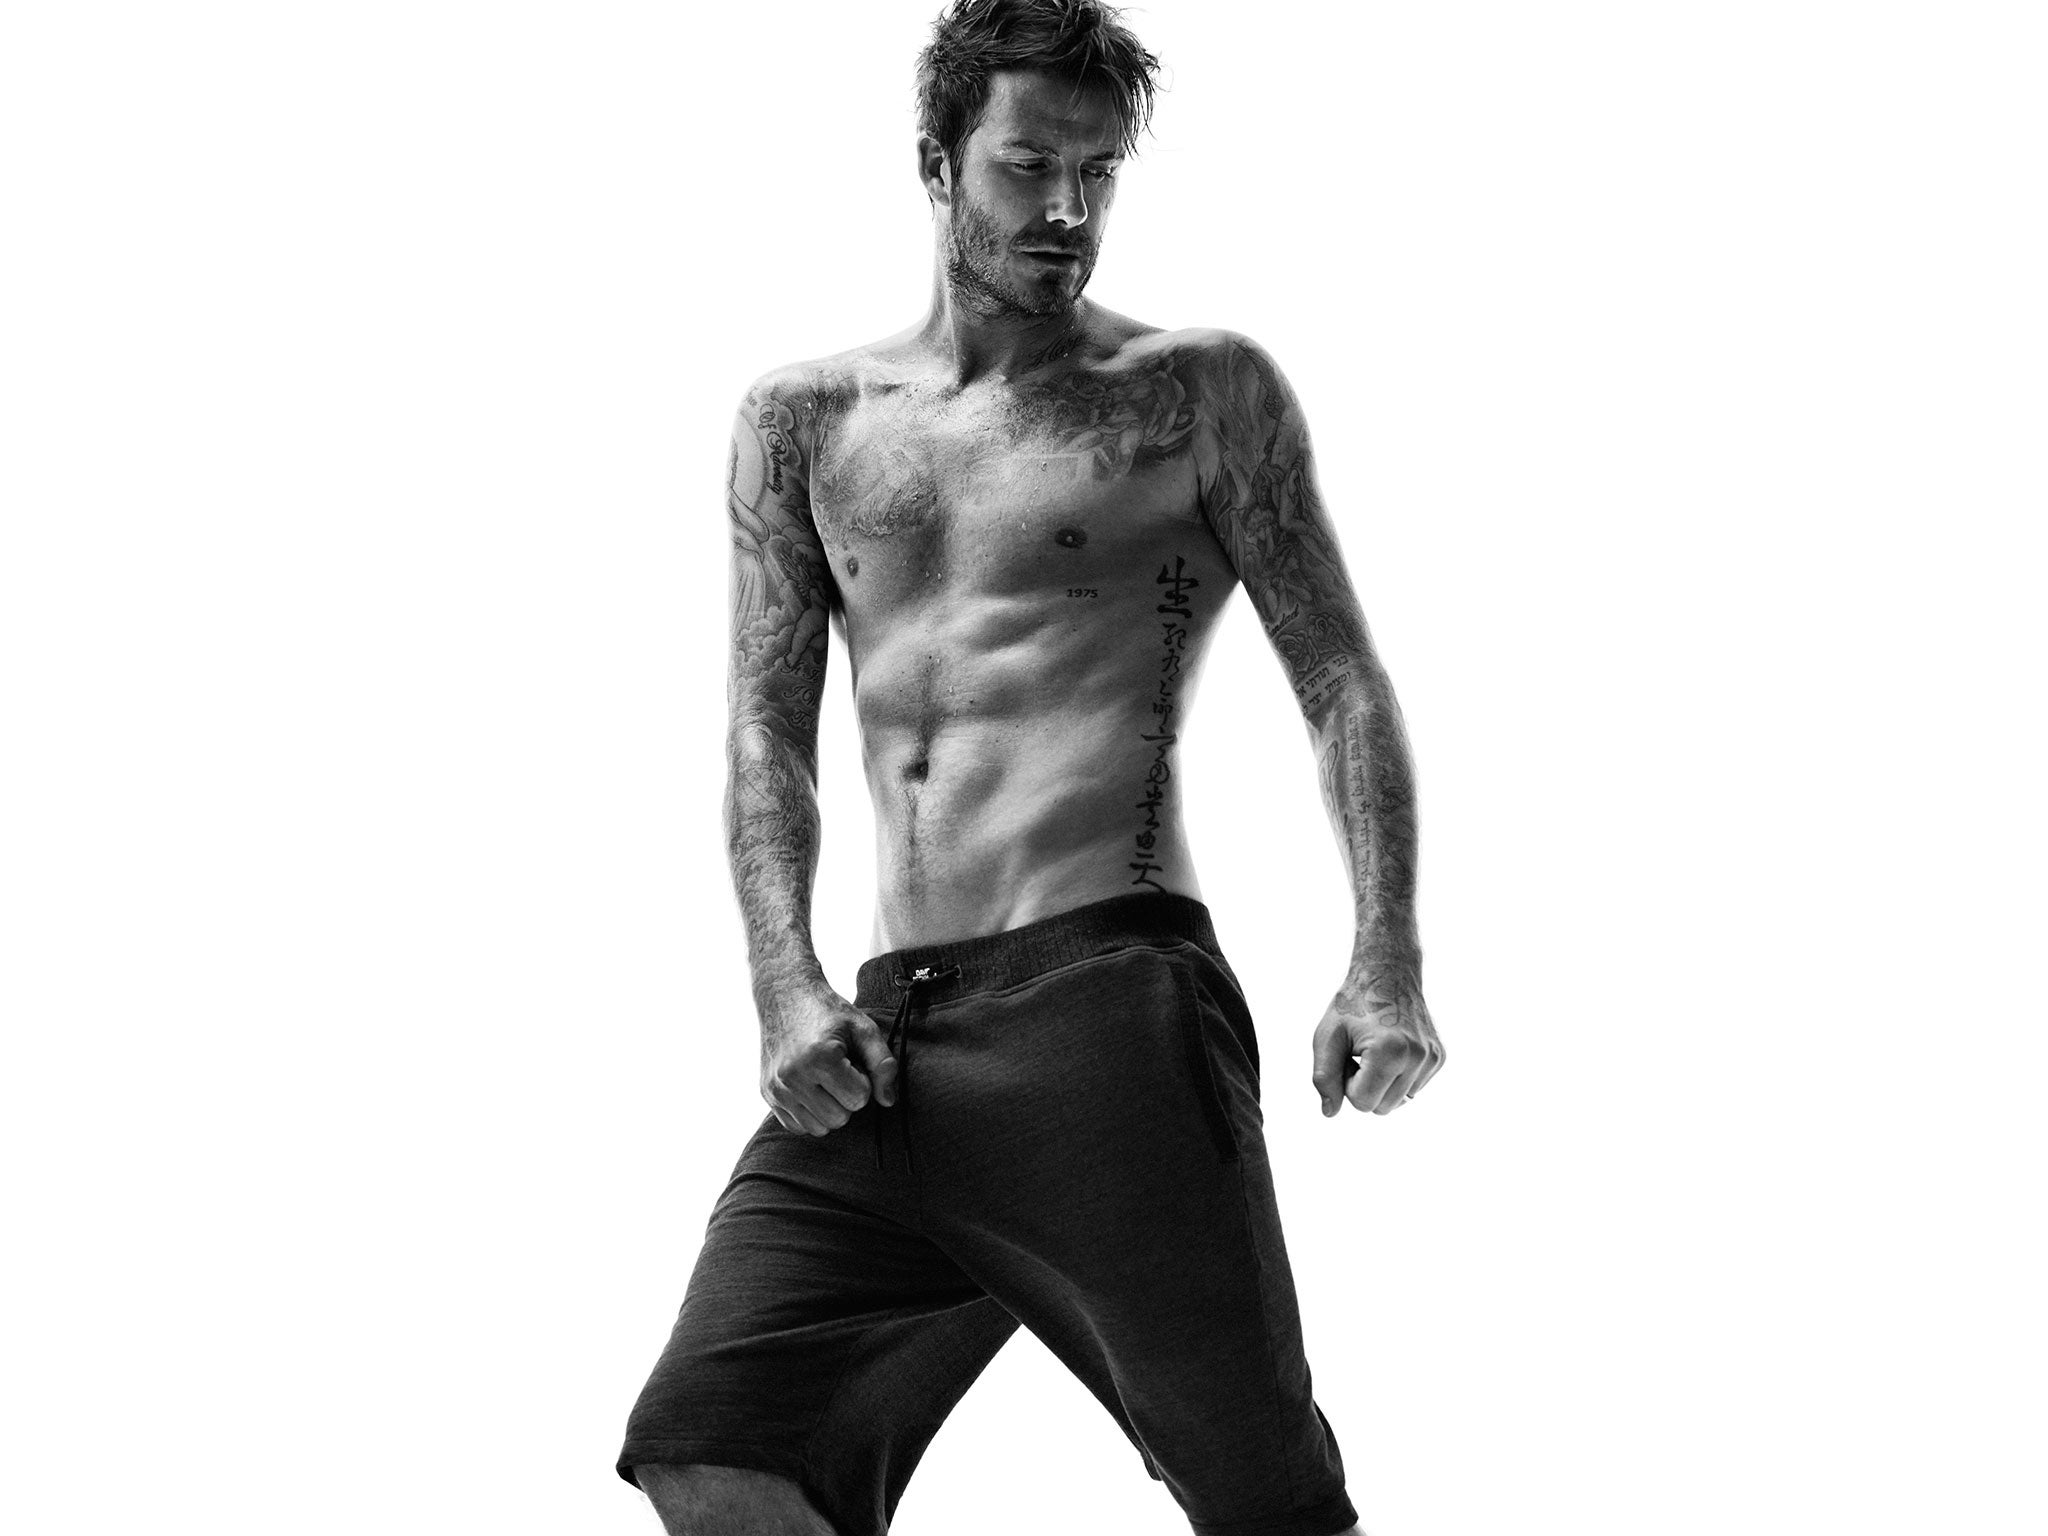 David Beckham To Launch His Own Clothing Line David Beckham To Launch His Own Clothing Line new pictures